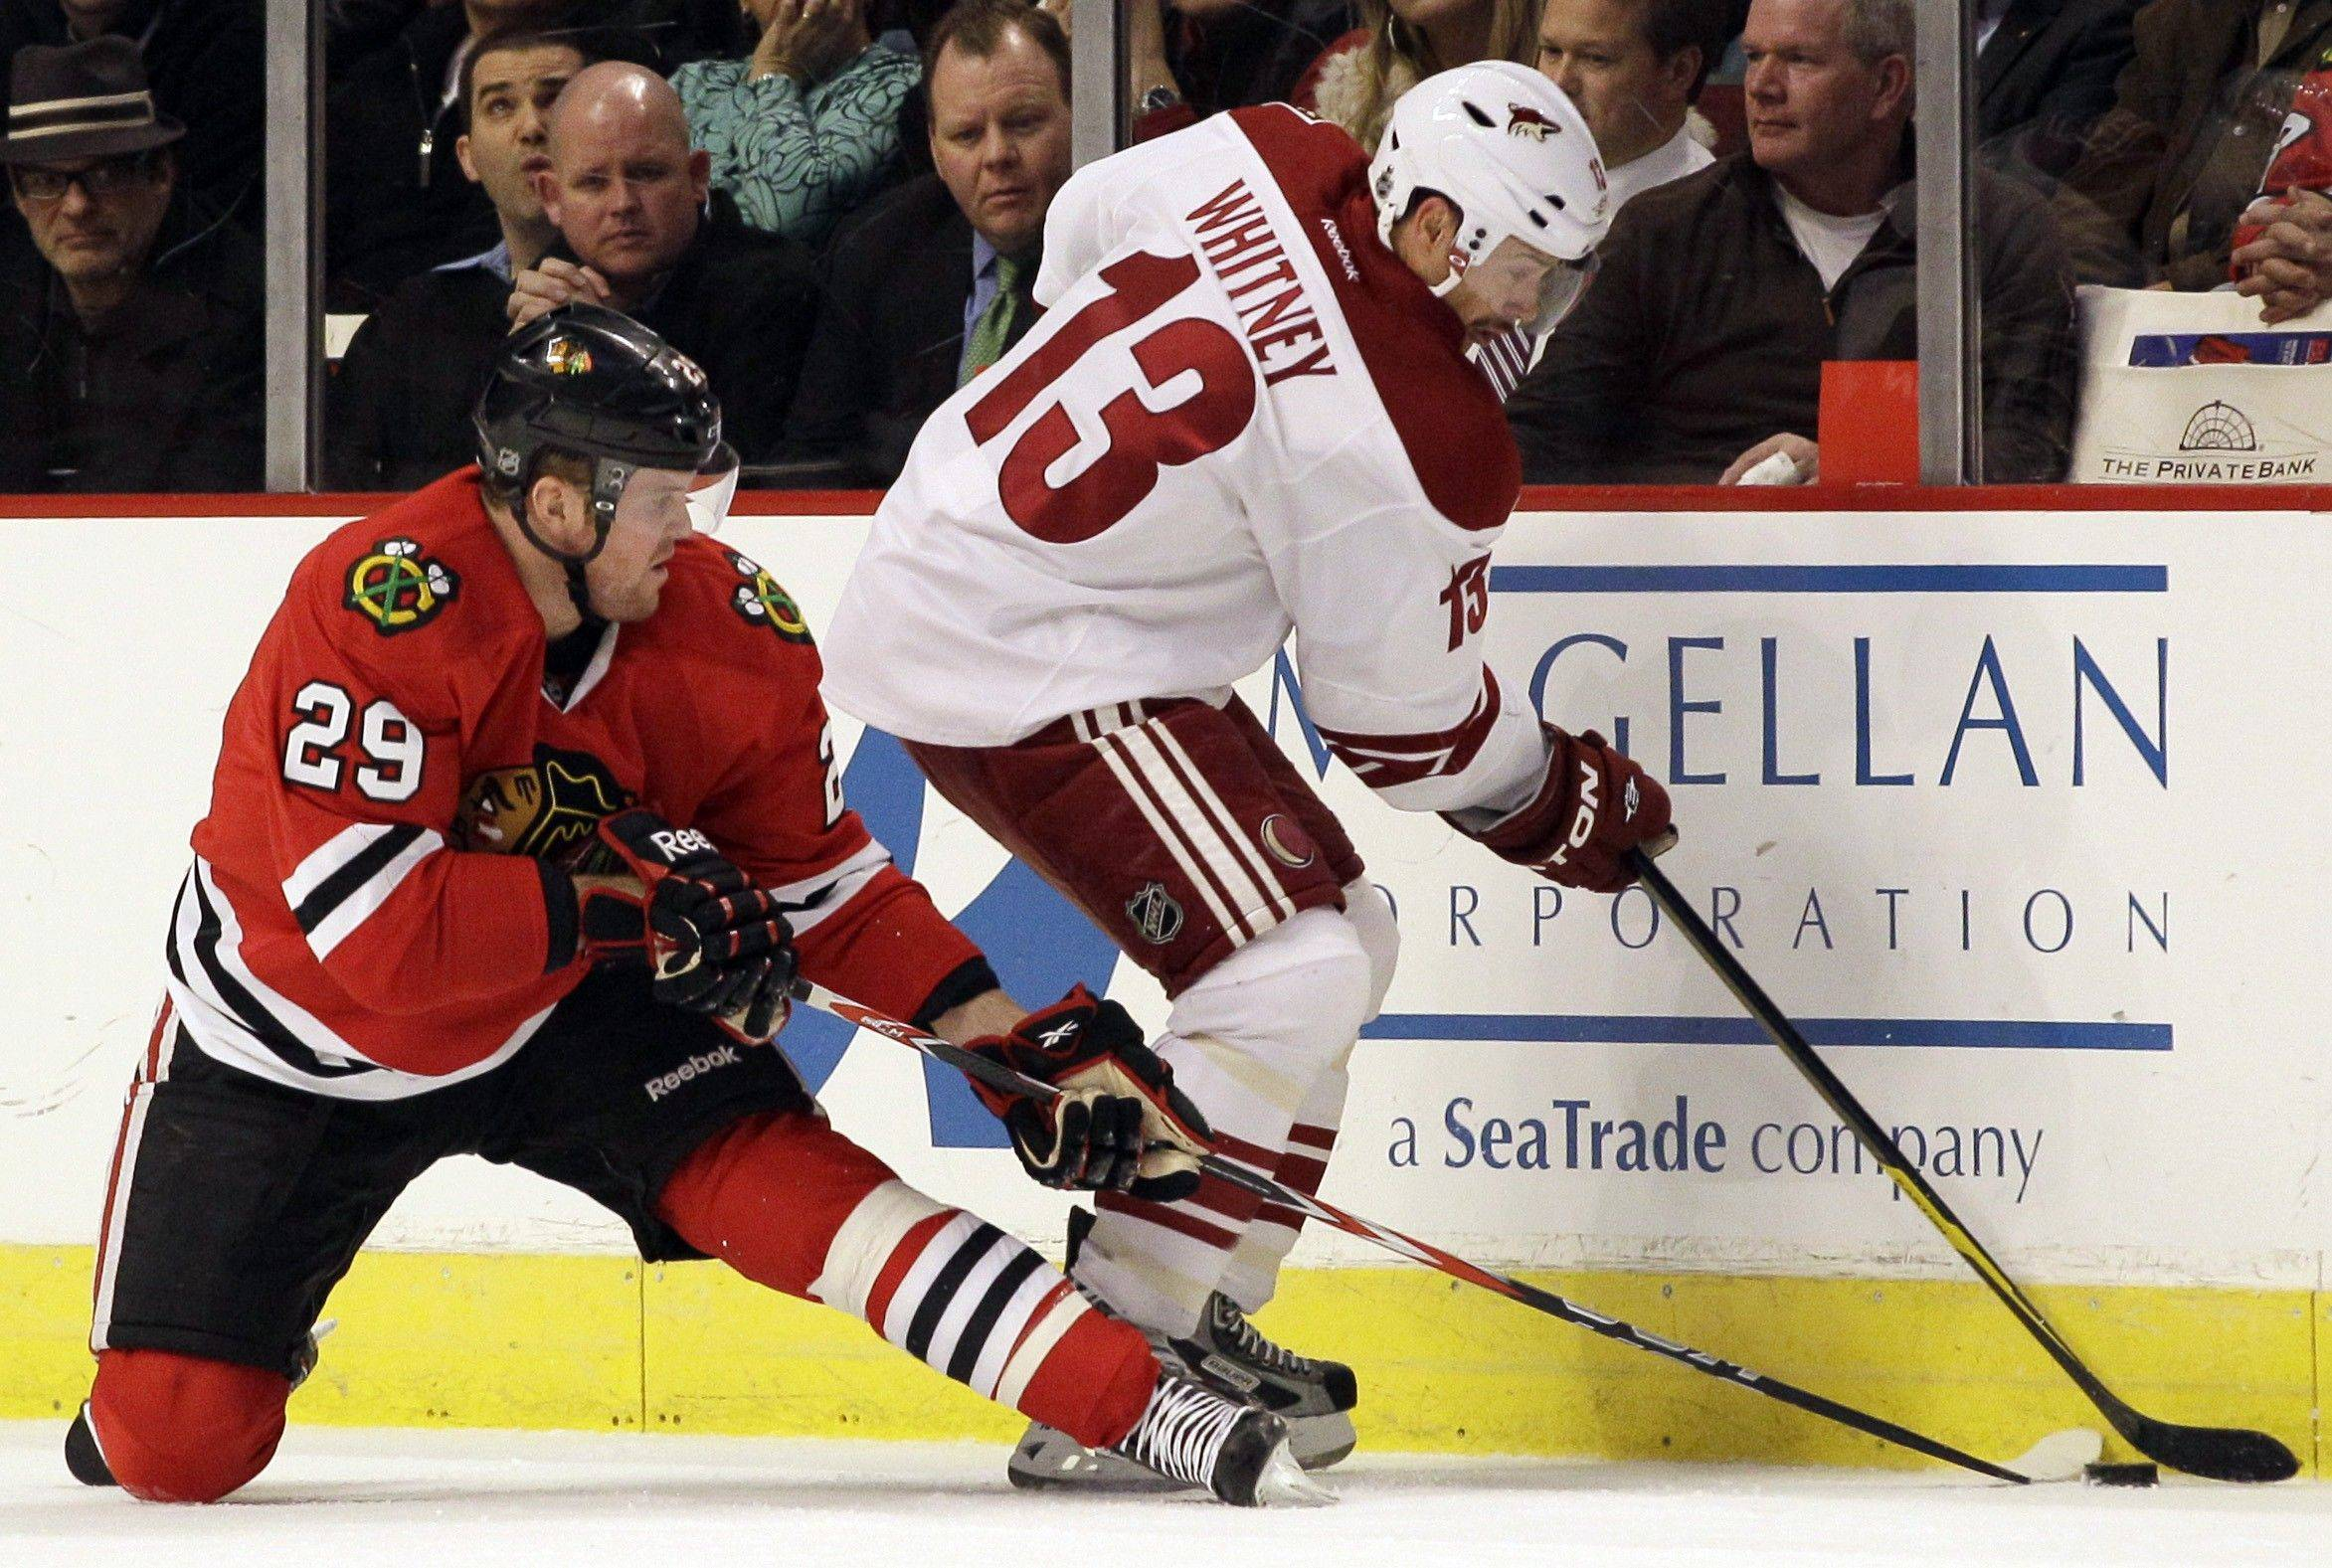 Phoenix Coyotes' Ray Whitney and Bryan Bickell of the Blackhawks battle for the puck in a game last month. Bickell is a minus-8 with only 3 goals this season.